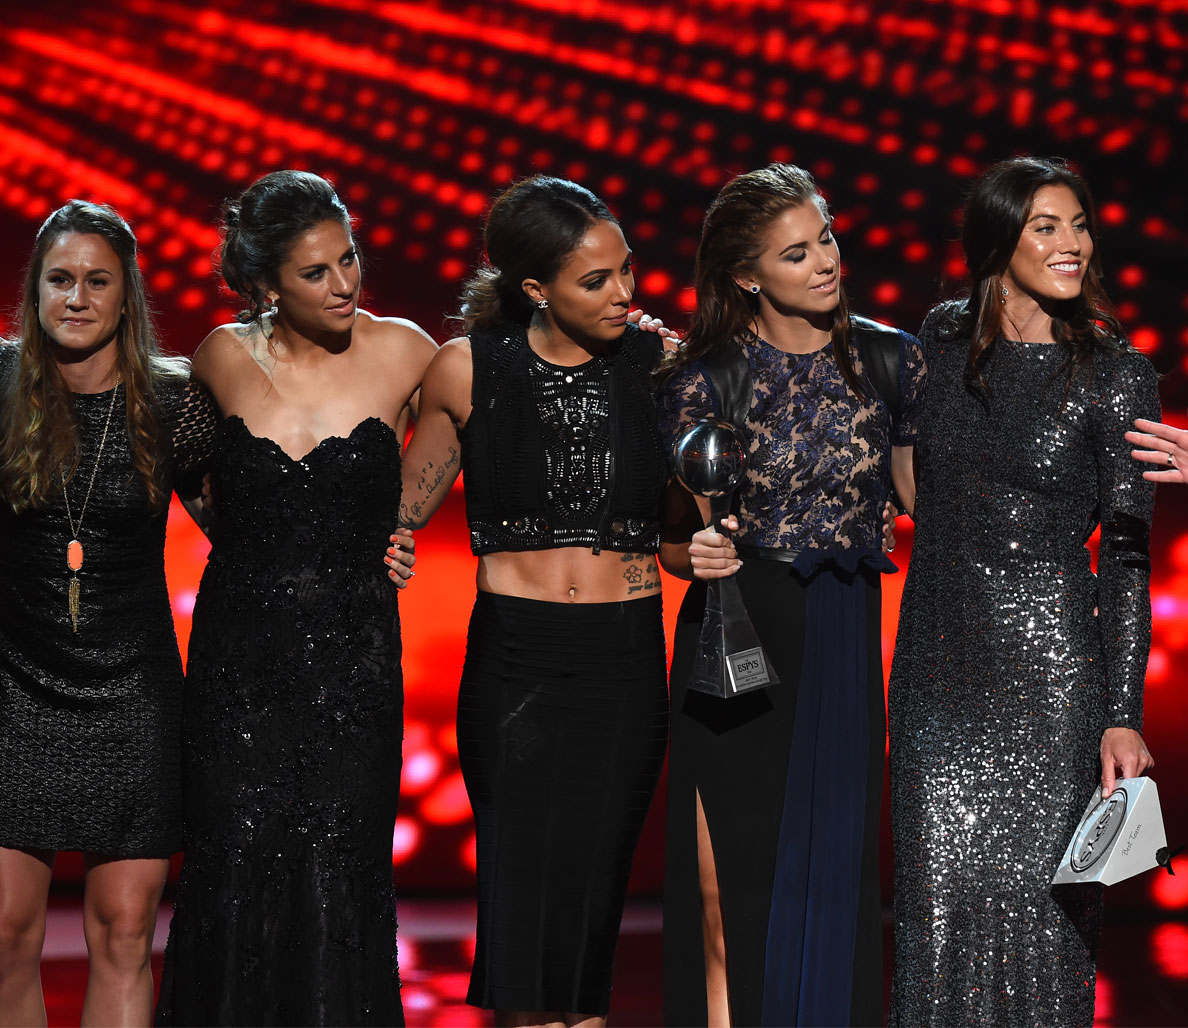 These 13 Women Crushed It at the ESPYS